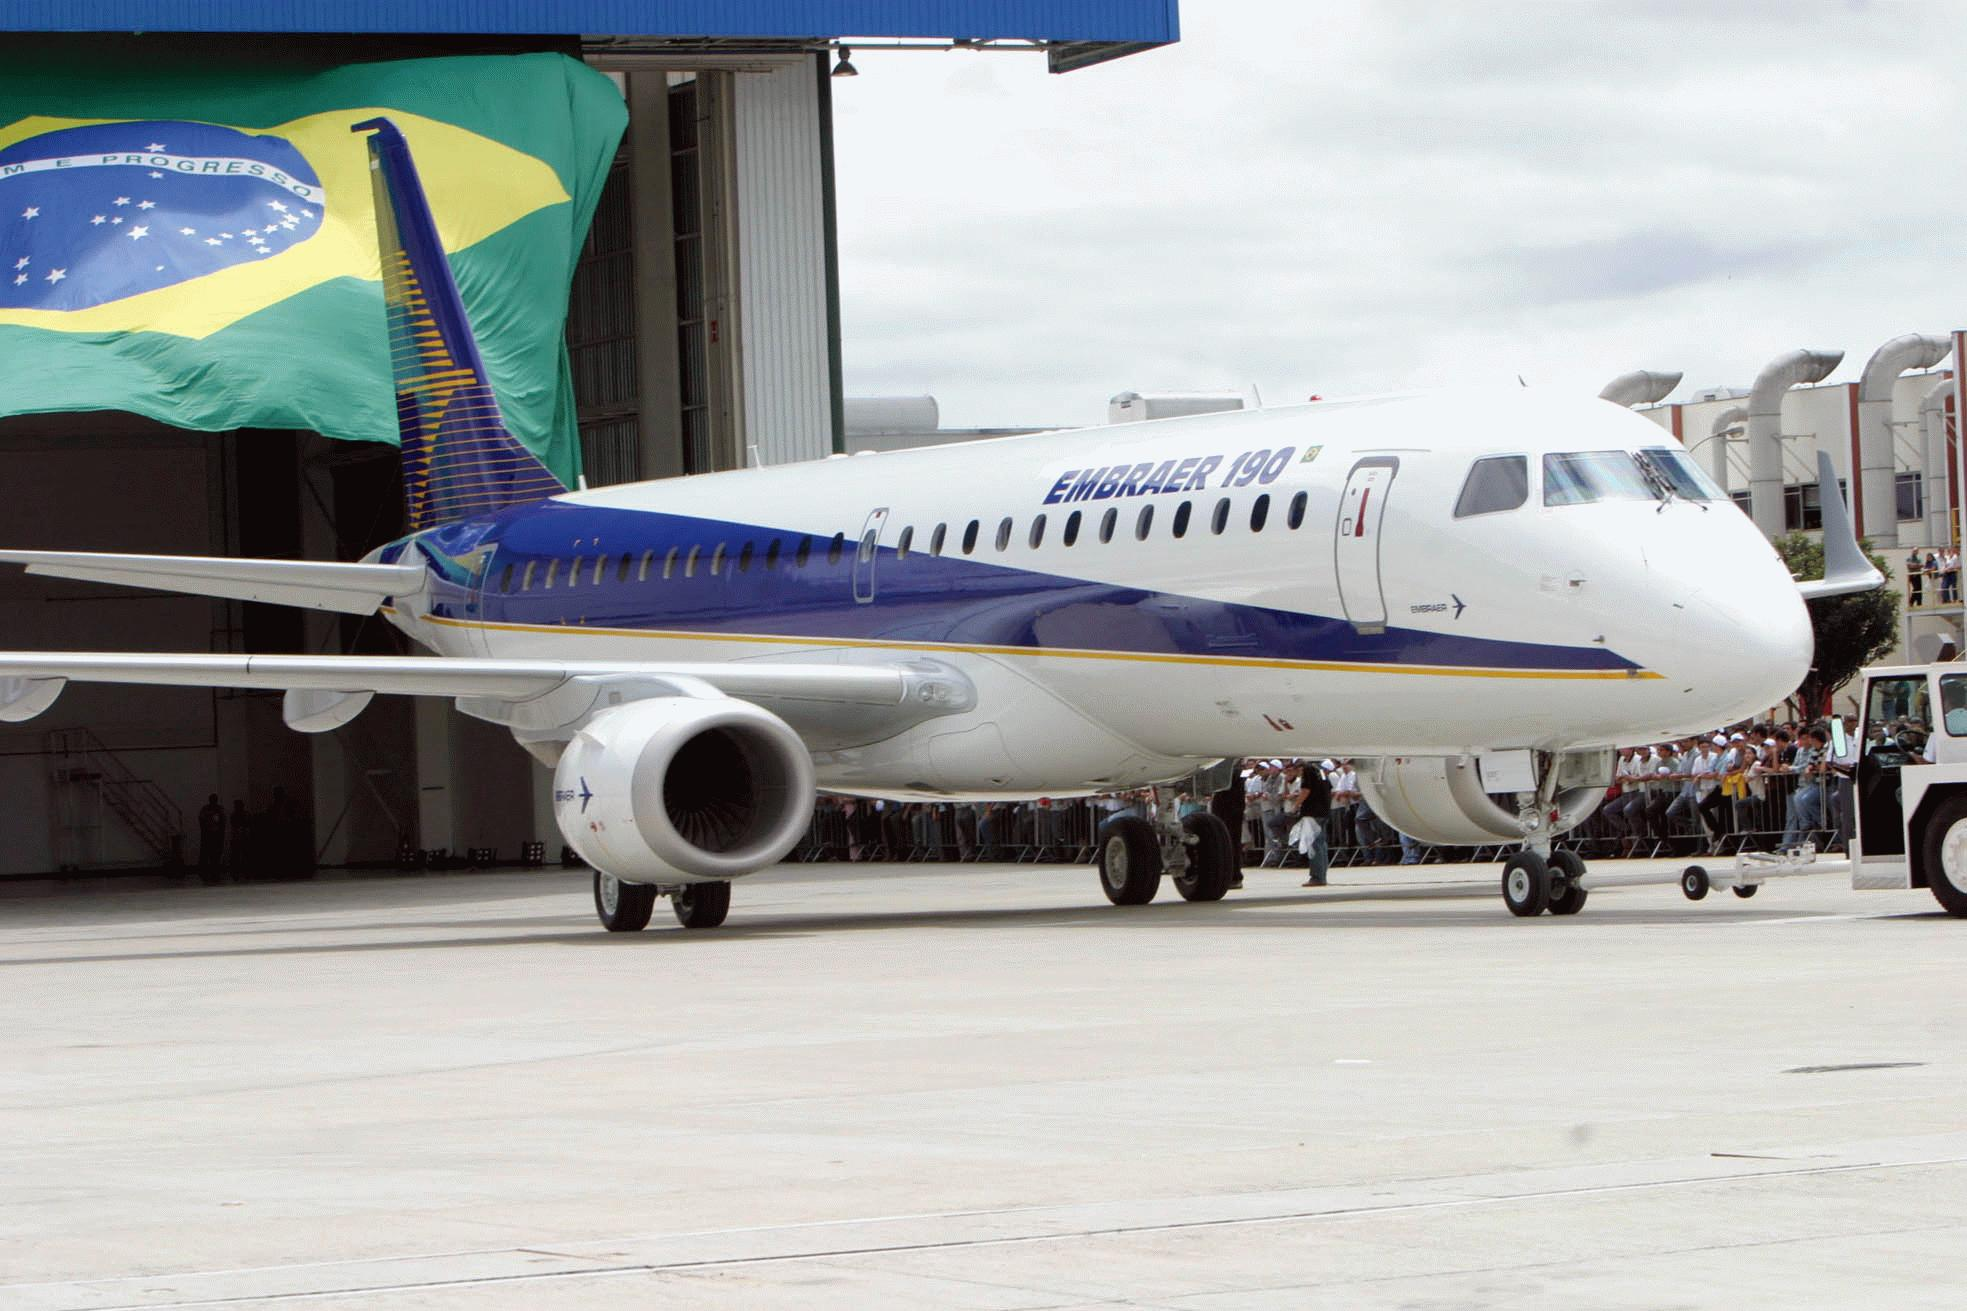 Embraer will replenish working capital for 600 million USD on account of loan fundsEmbraer will replenish working capital for 600 million USD on account of loan funds